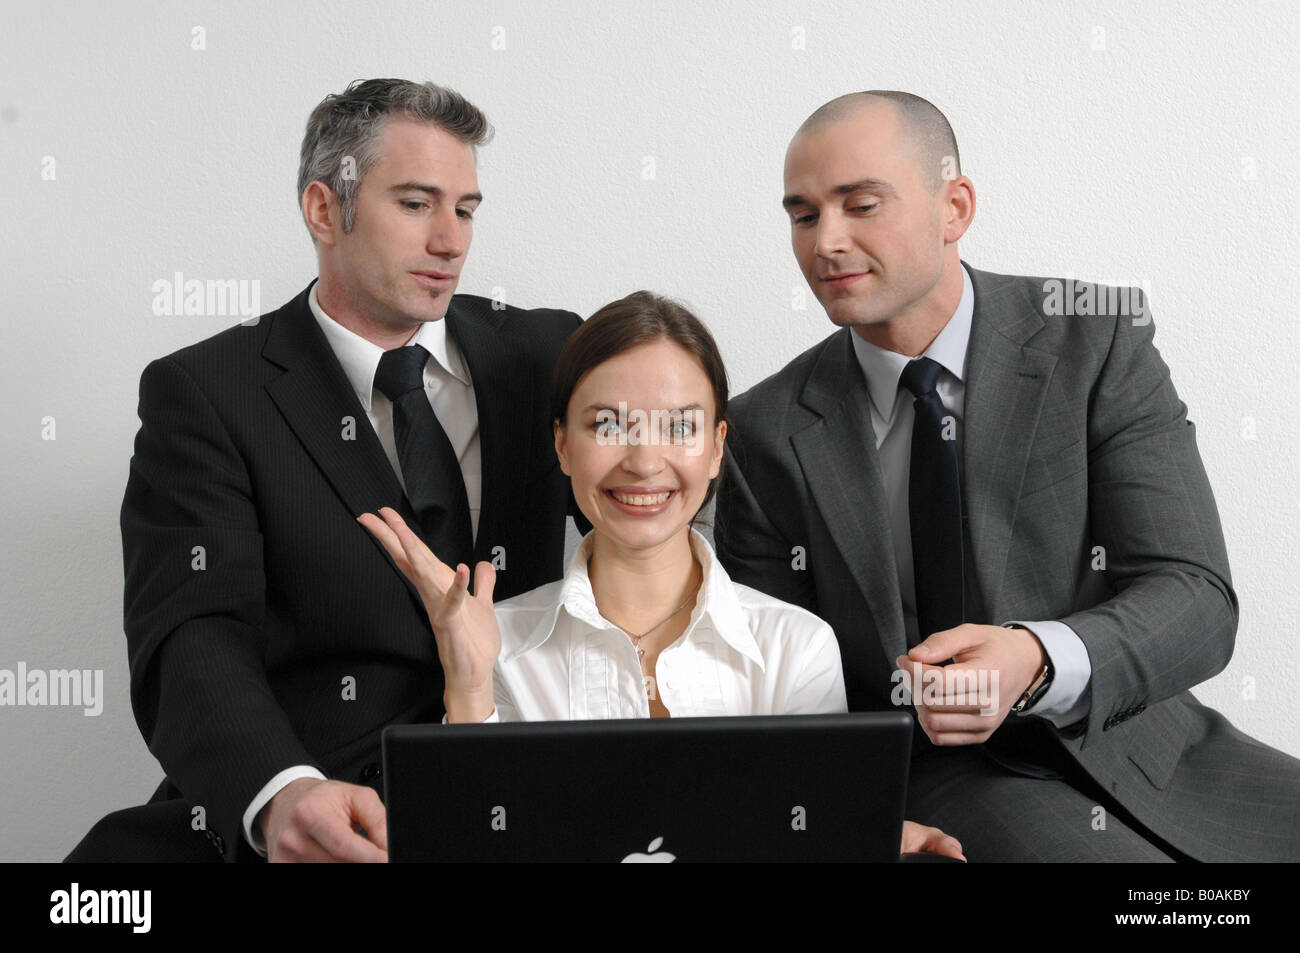 business team at work - Stock Image